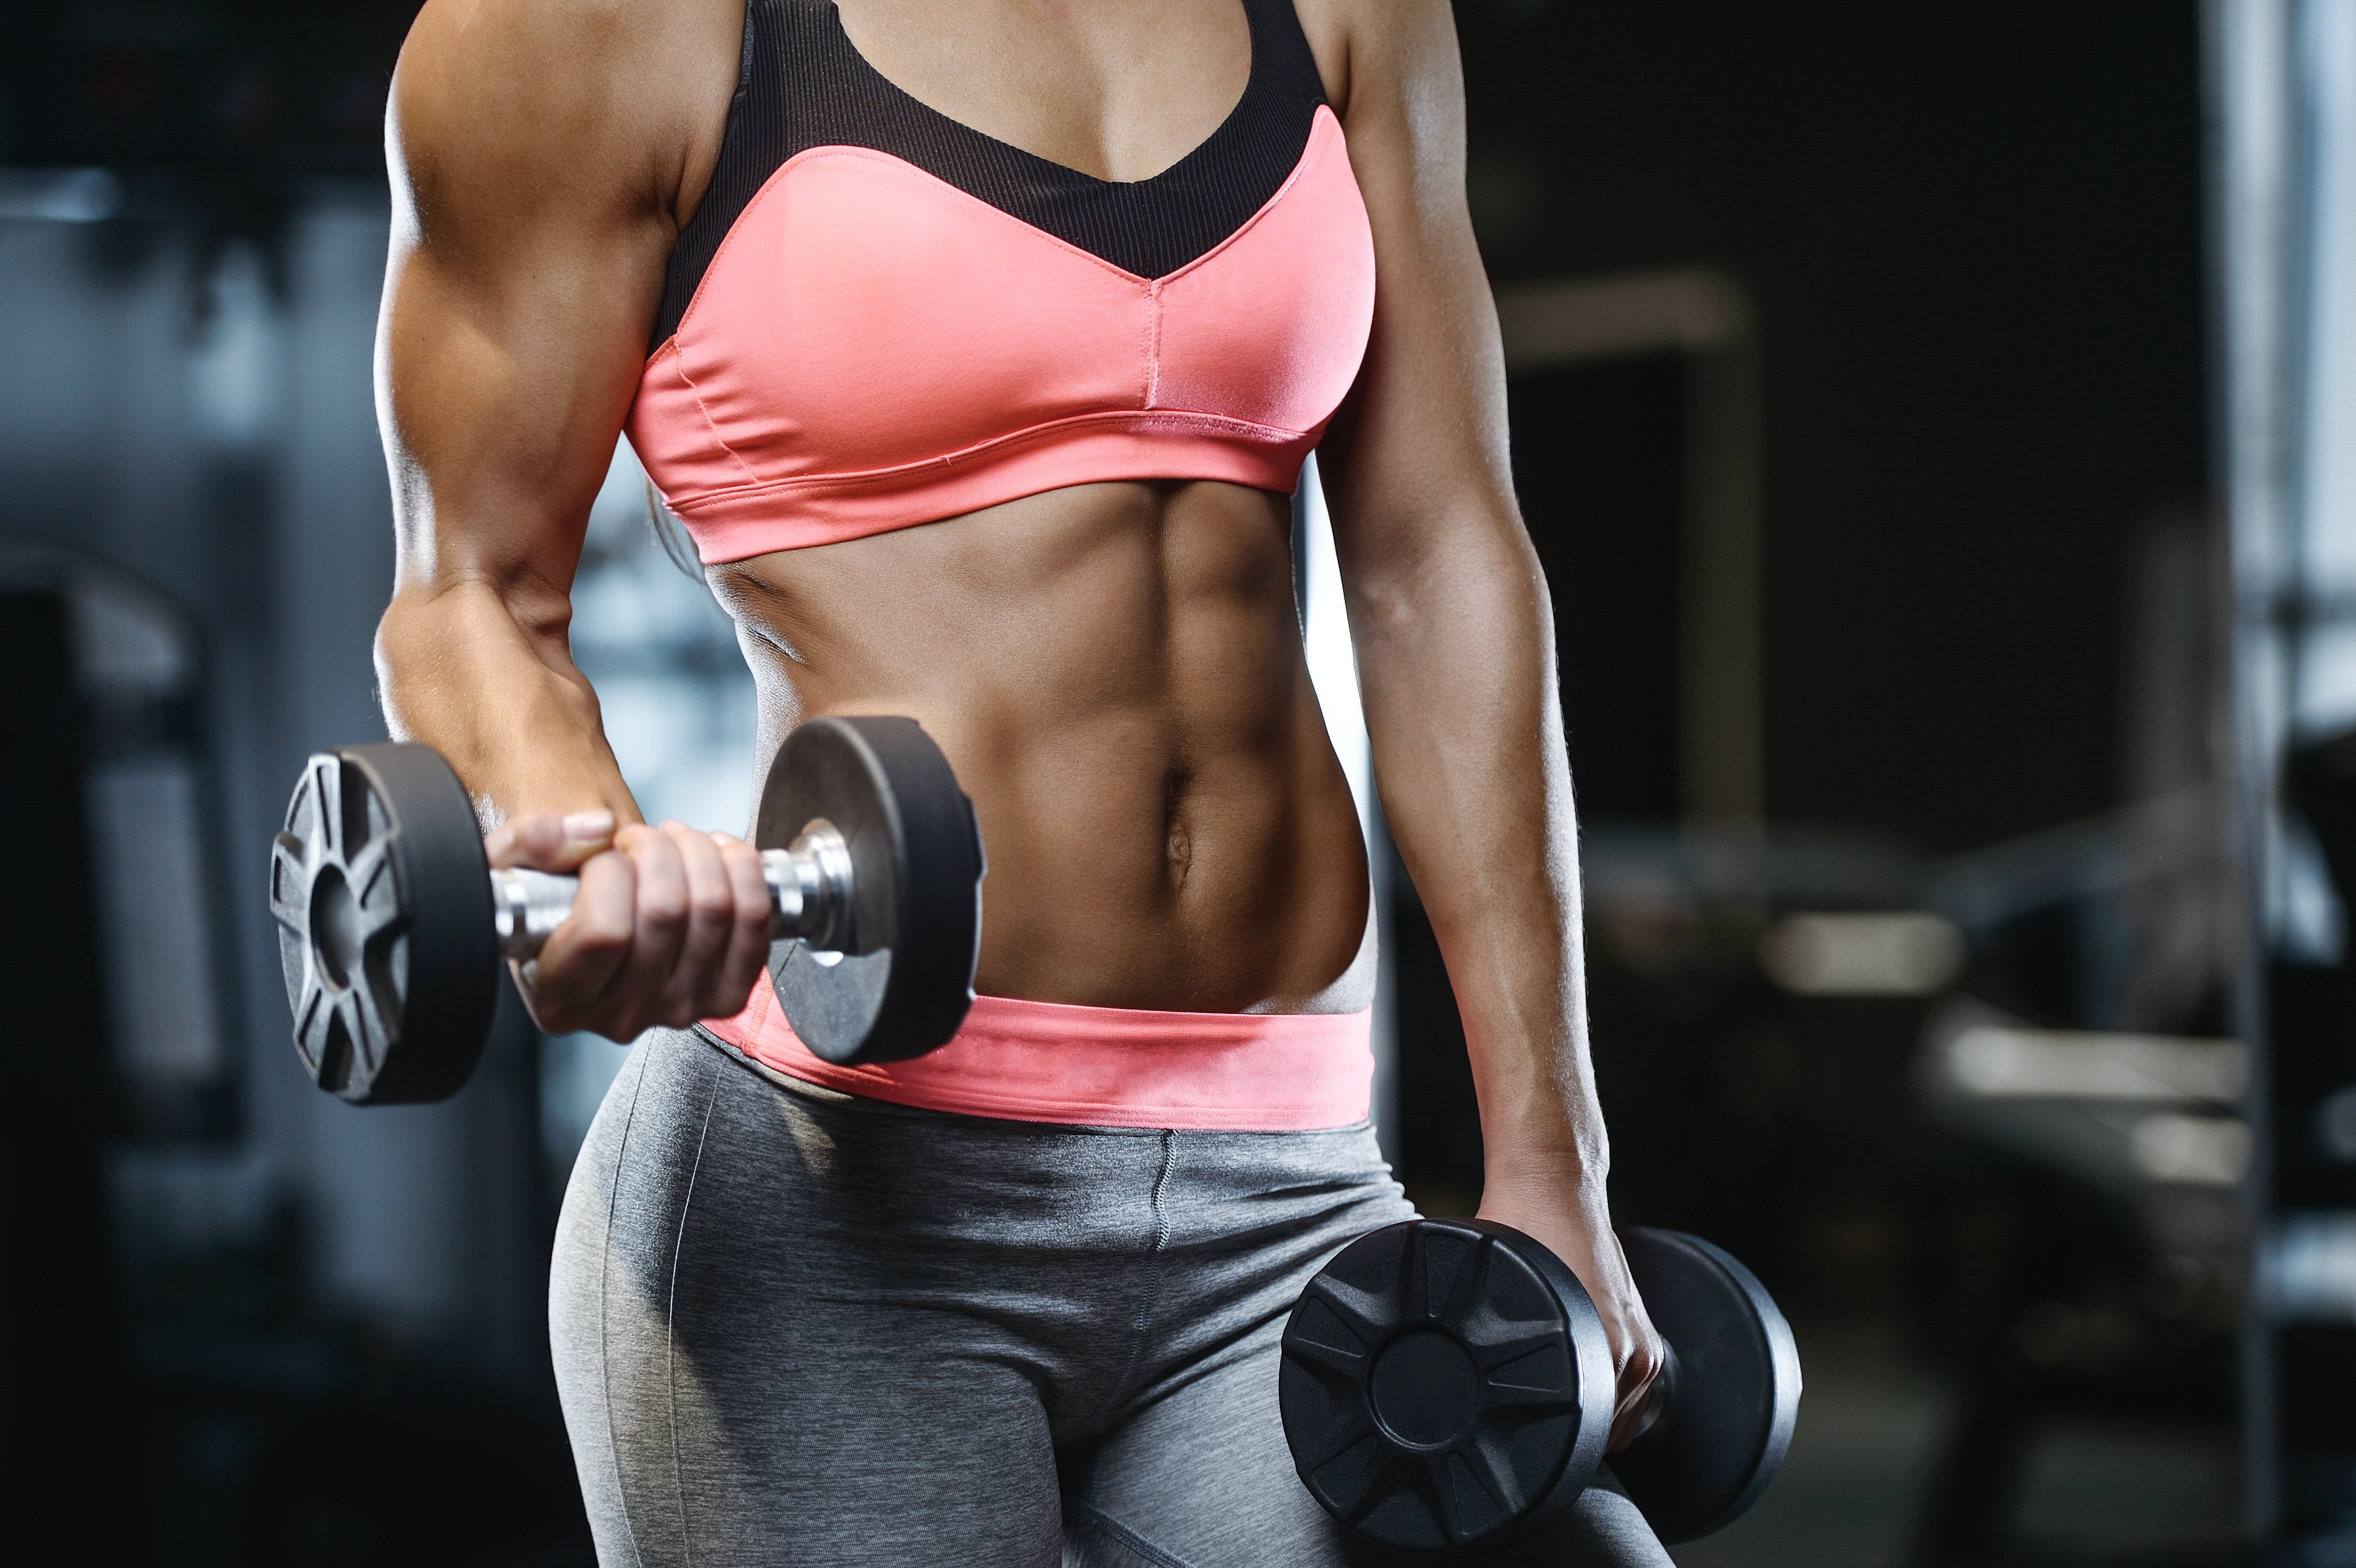 Incorporate Both Cardio and Strength Training into Your Workout at Our Las Vegas Gym